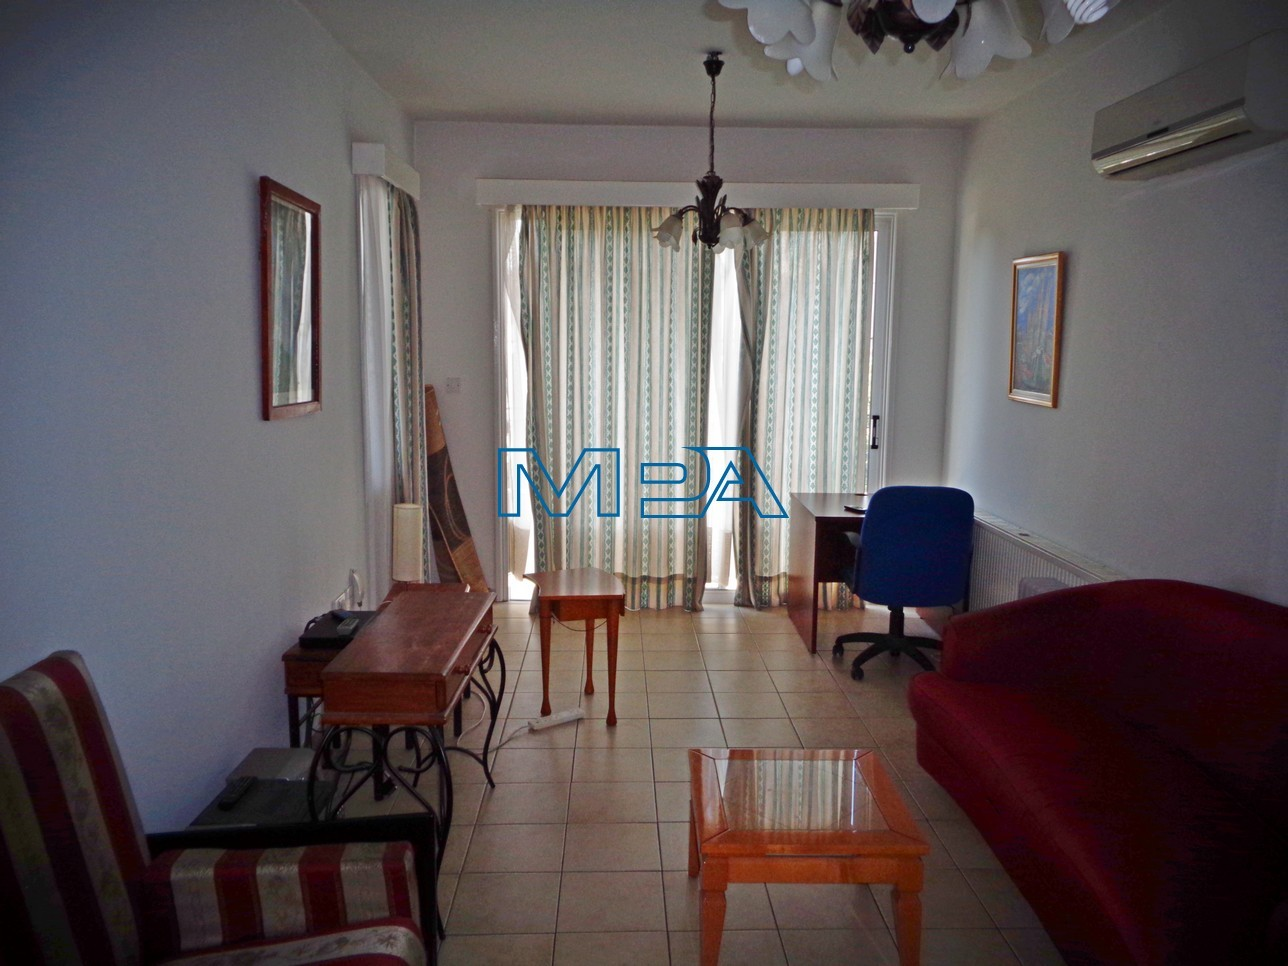 Upper House Apartment in Strovolos for Rent  3 Bedrooms 1 Ba.....